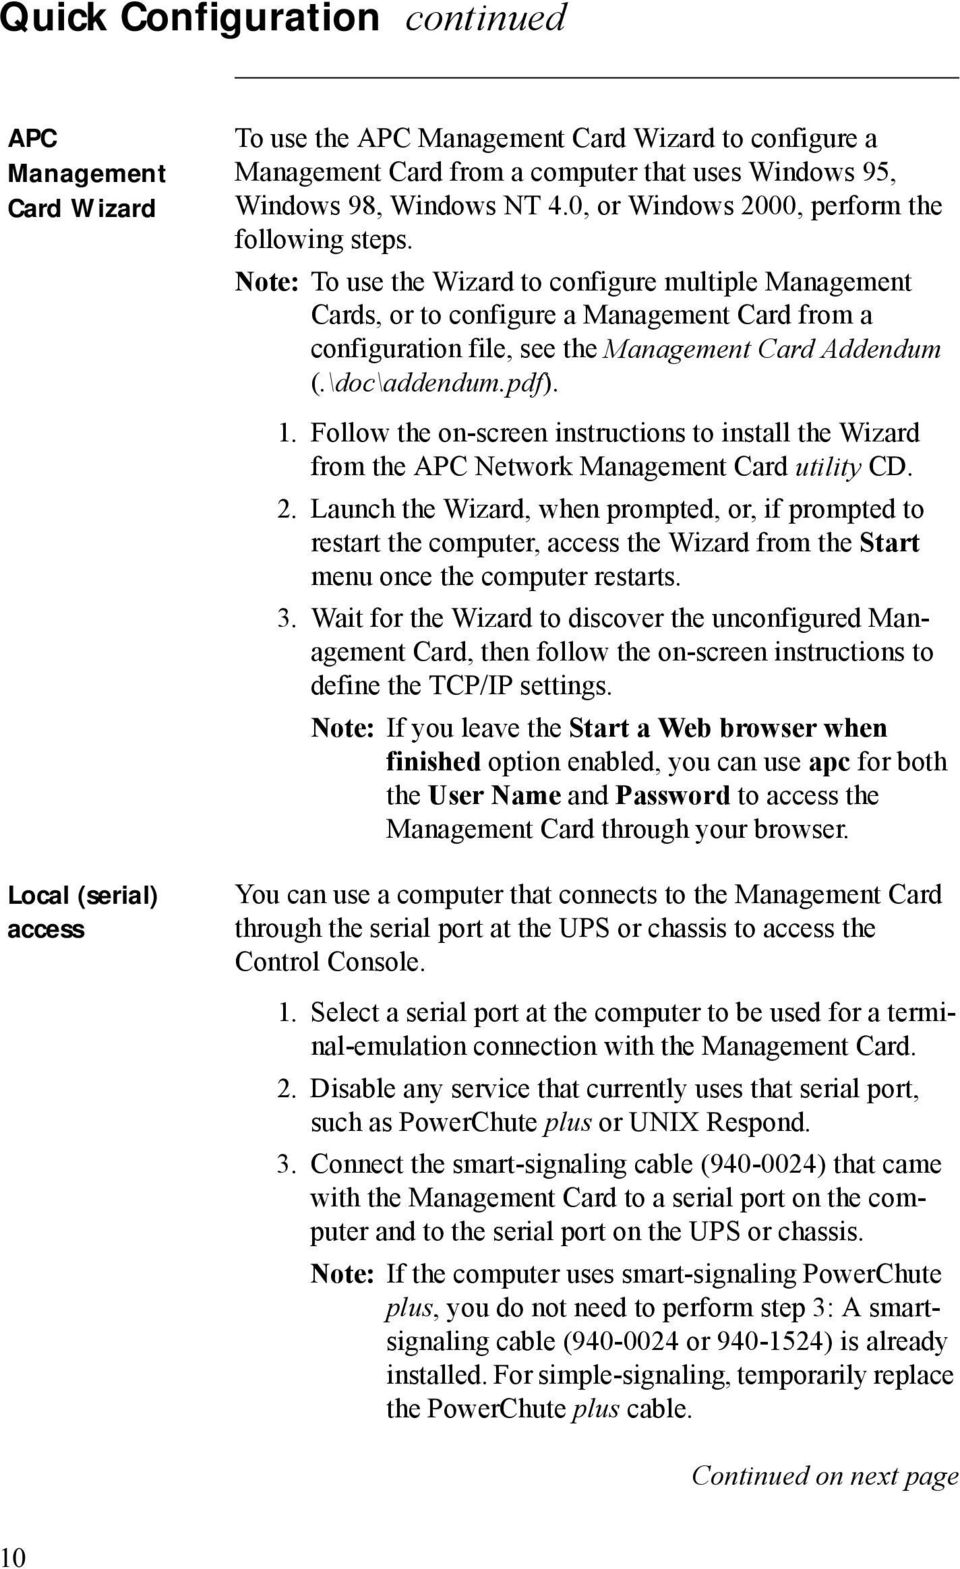 Note: To use the Wizard to configure multiple Management Cards, or to configure a Management Card from a configuration file, see the Management Card Addendum (.\doc\addendum.pdf). 1.